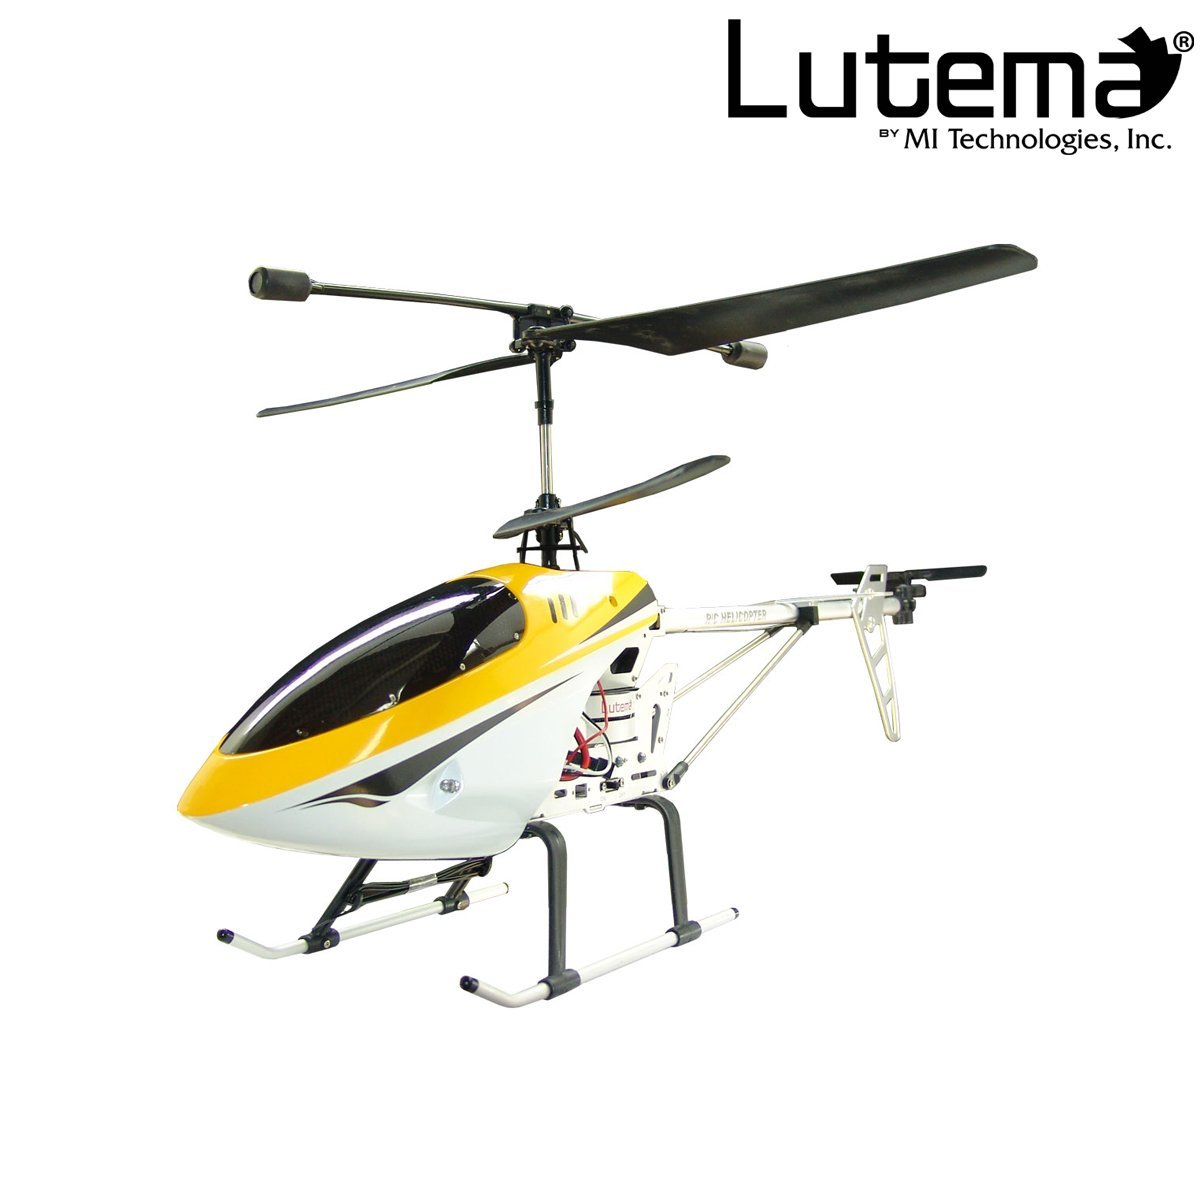 Lutema 3.5CH Remote Control Helicopter